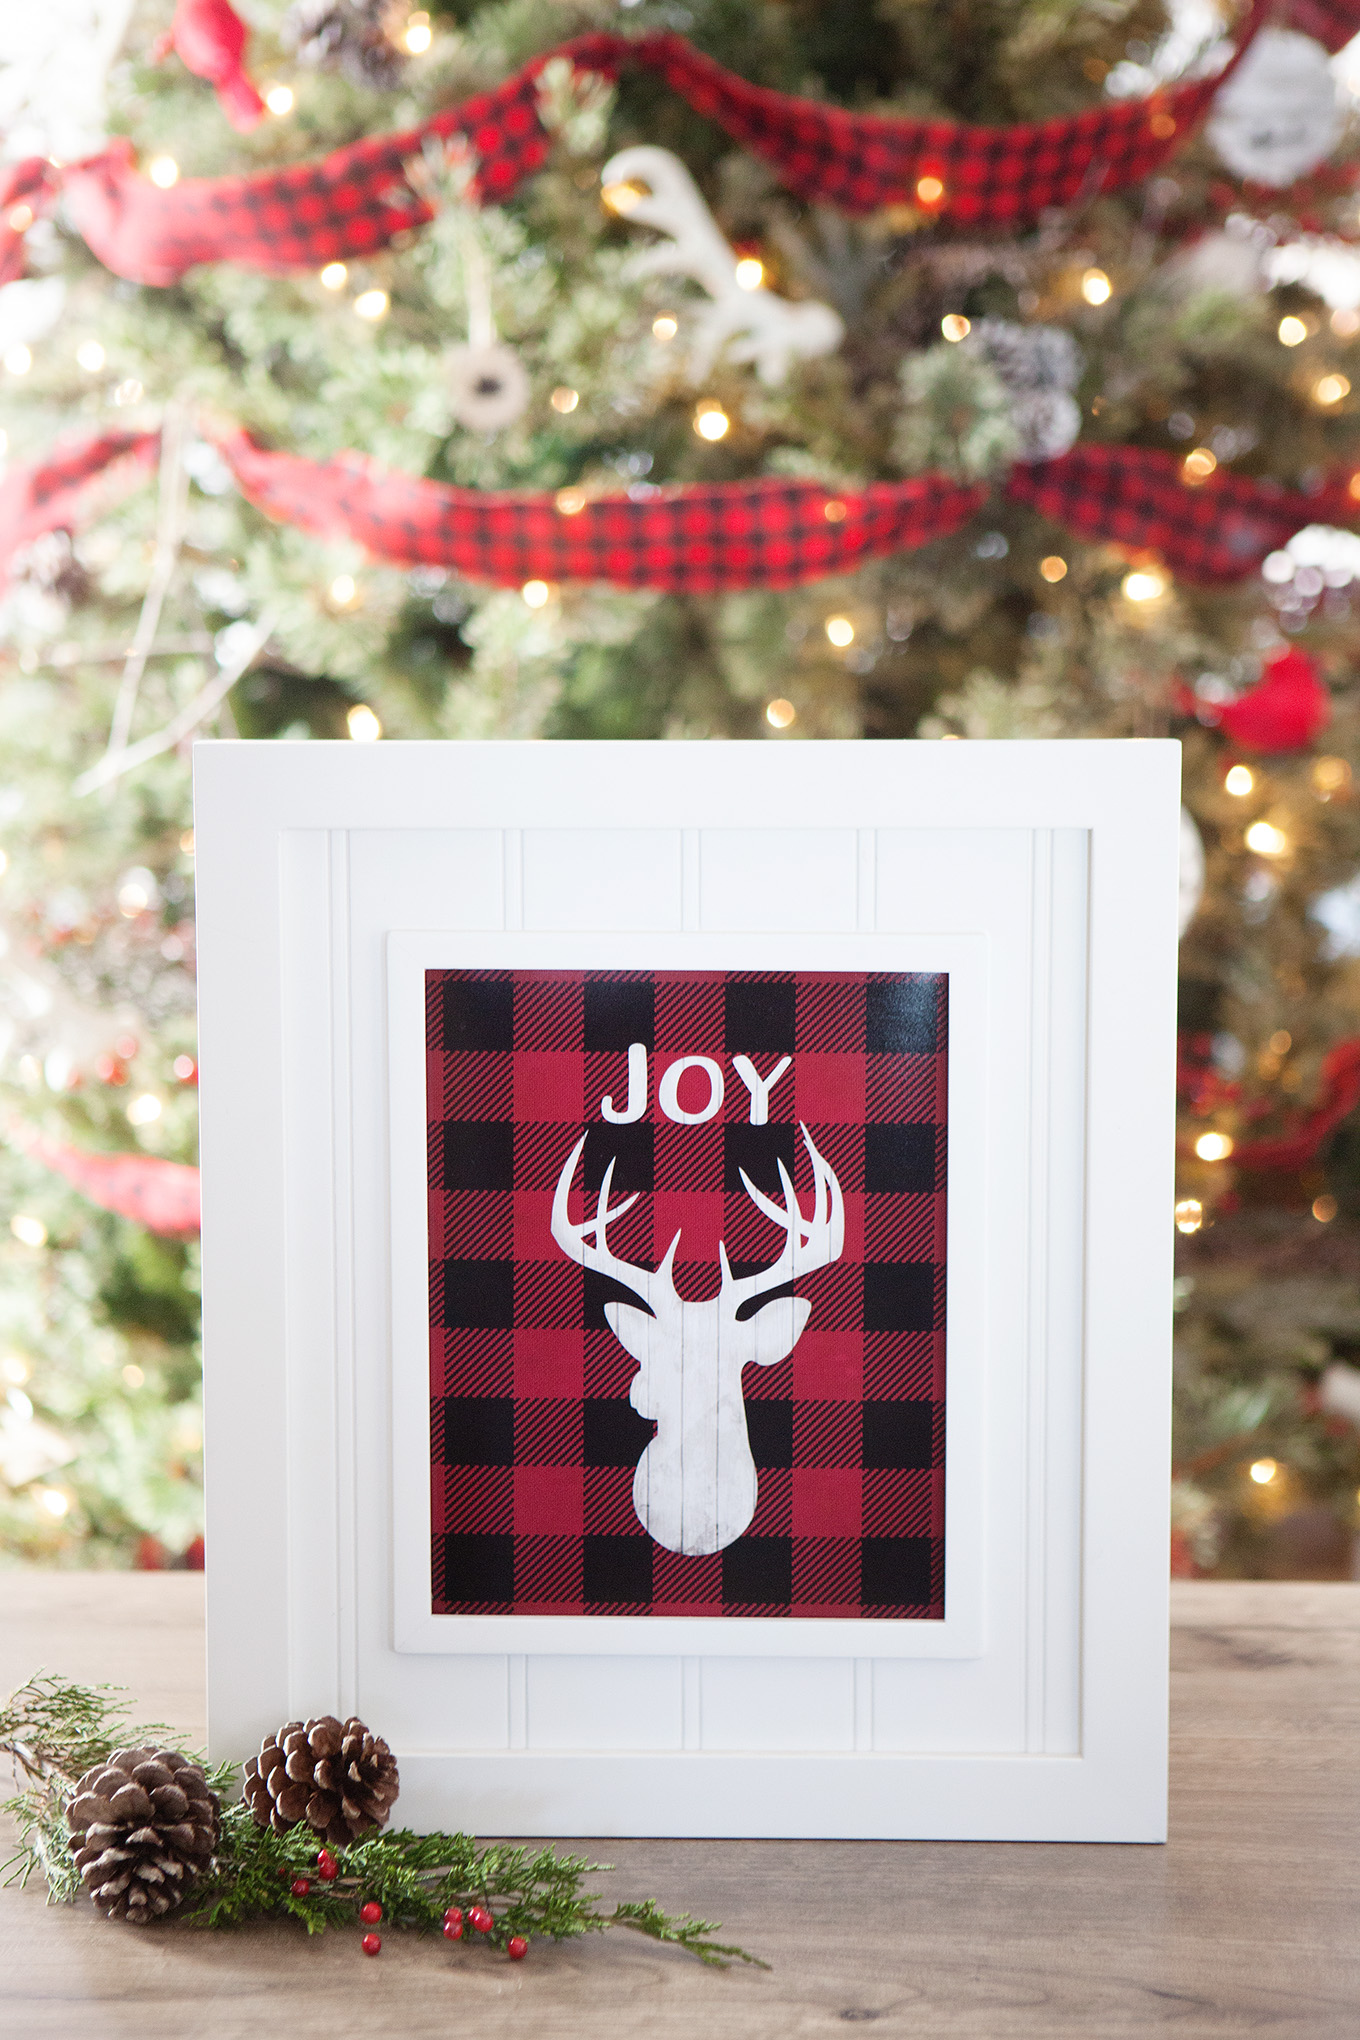 Add a little rustic, outdoorsy flair to your holiday decor with this free buffalo check plaid print. Keep it yourself or give as a gift!